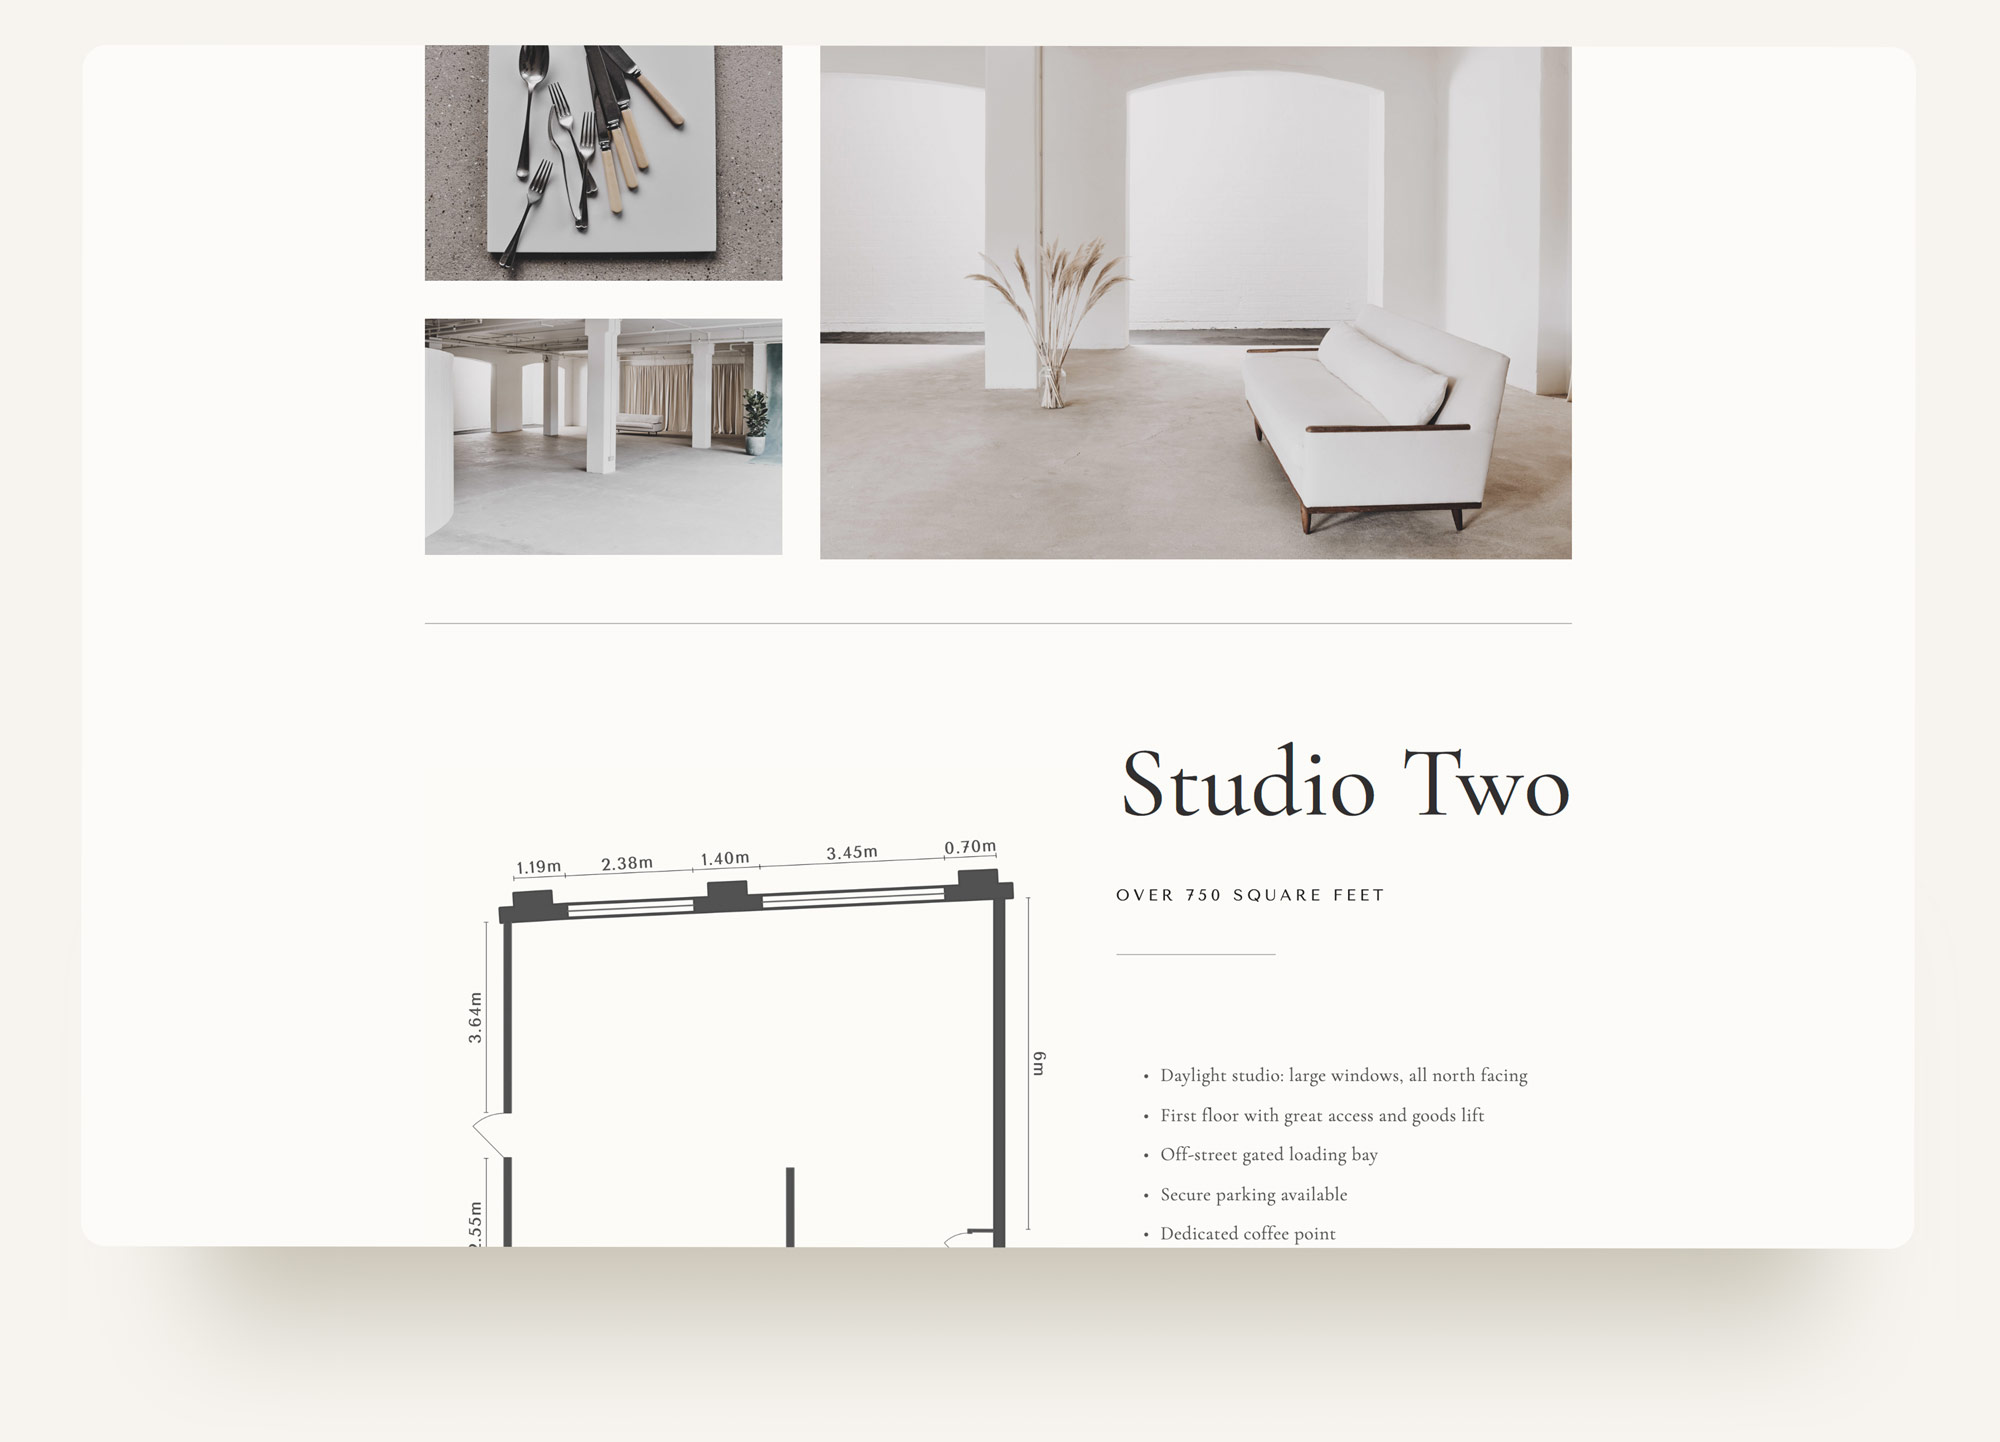 London photography studio image grid and floorplan specs for Archway Depot. Squarespace custom design by Brittany Hurdle beckon webeckon